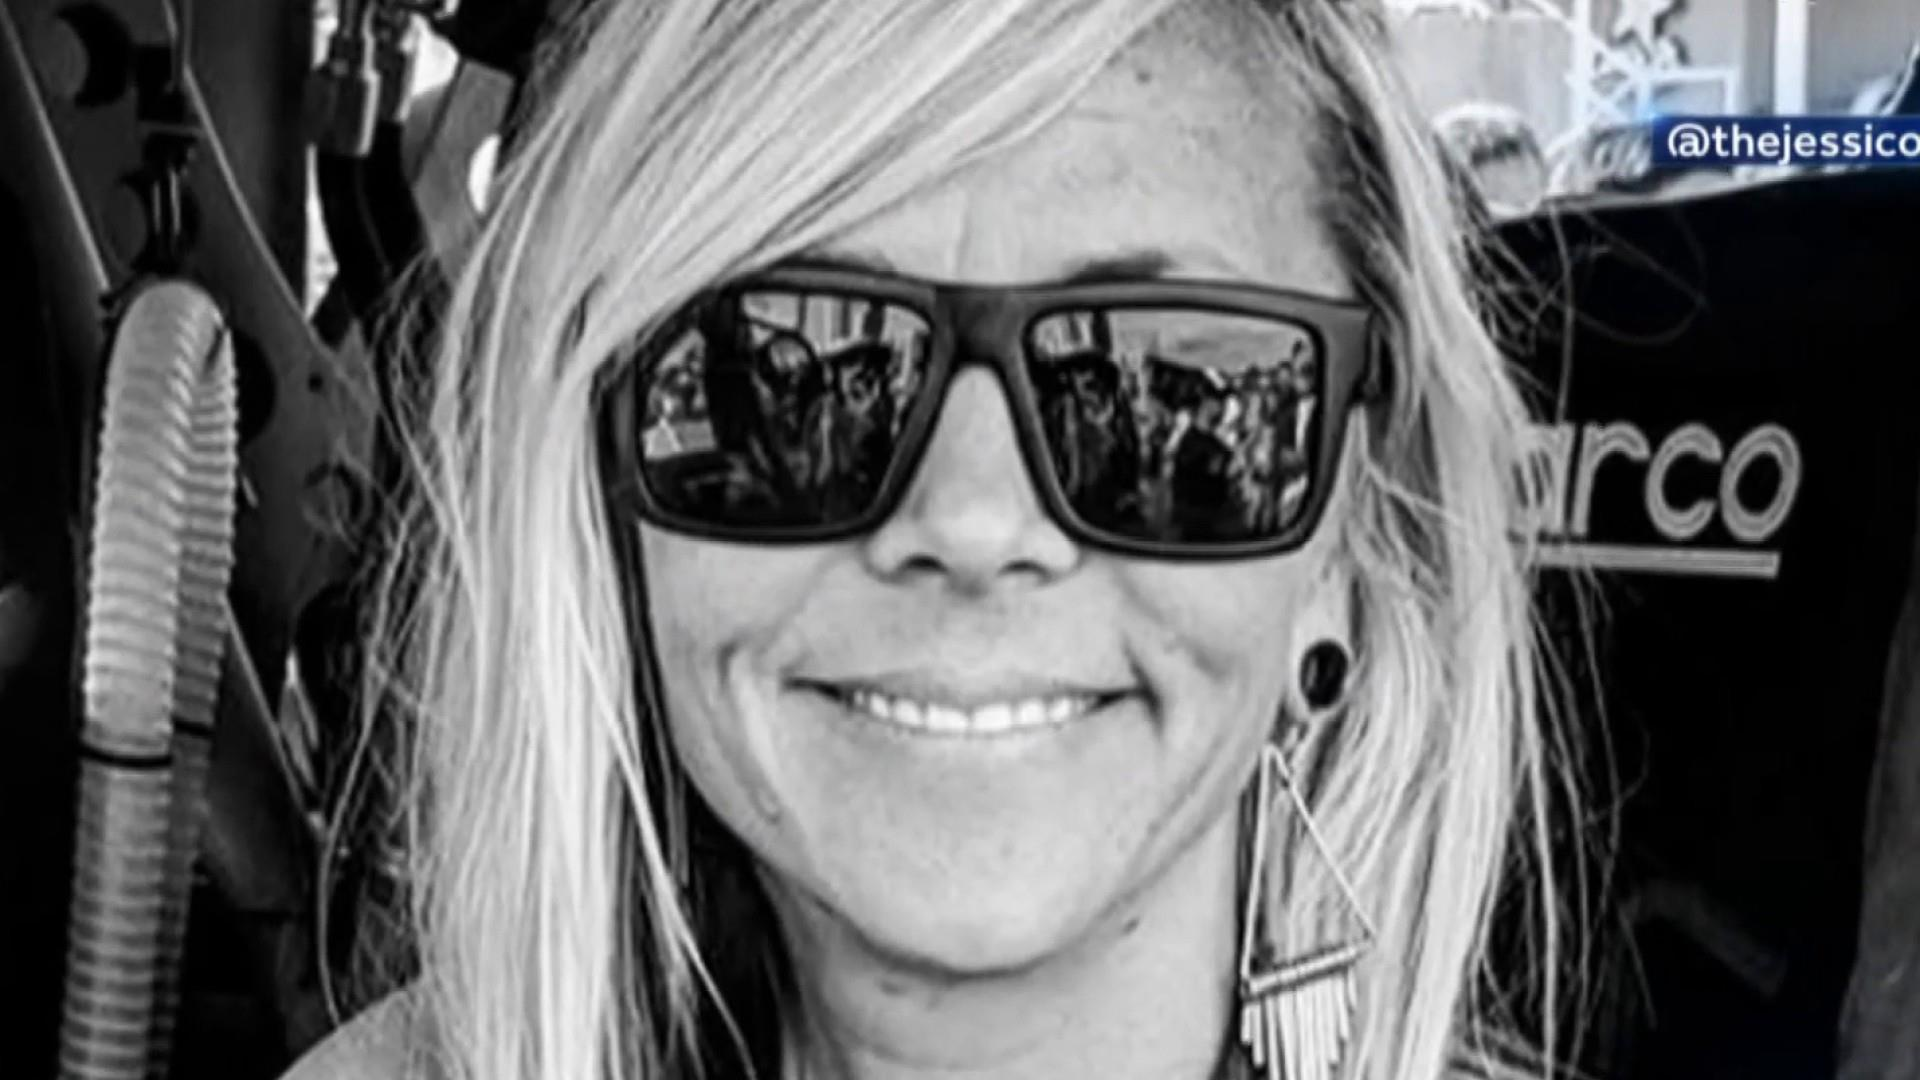 Jessi Combs of 'Mythbusters' dies in jet car crash attempting speed record in Oregon